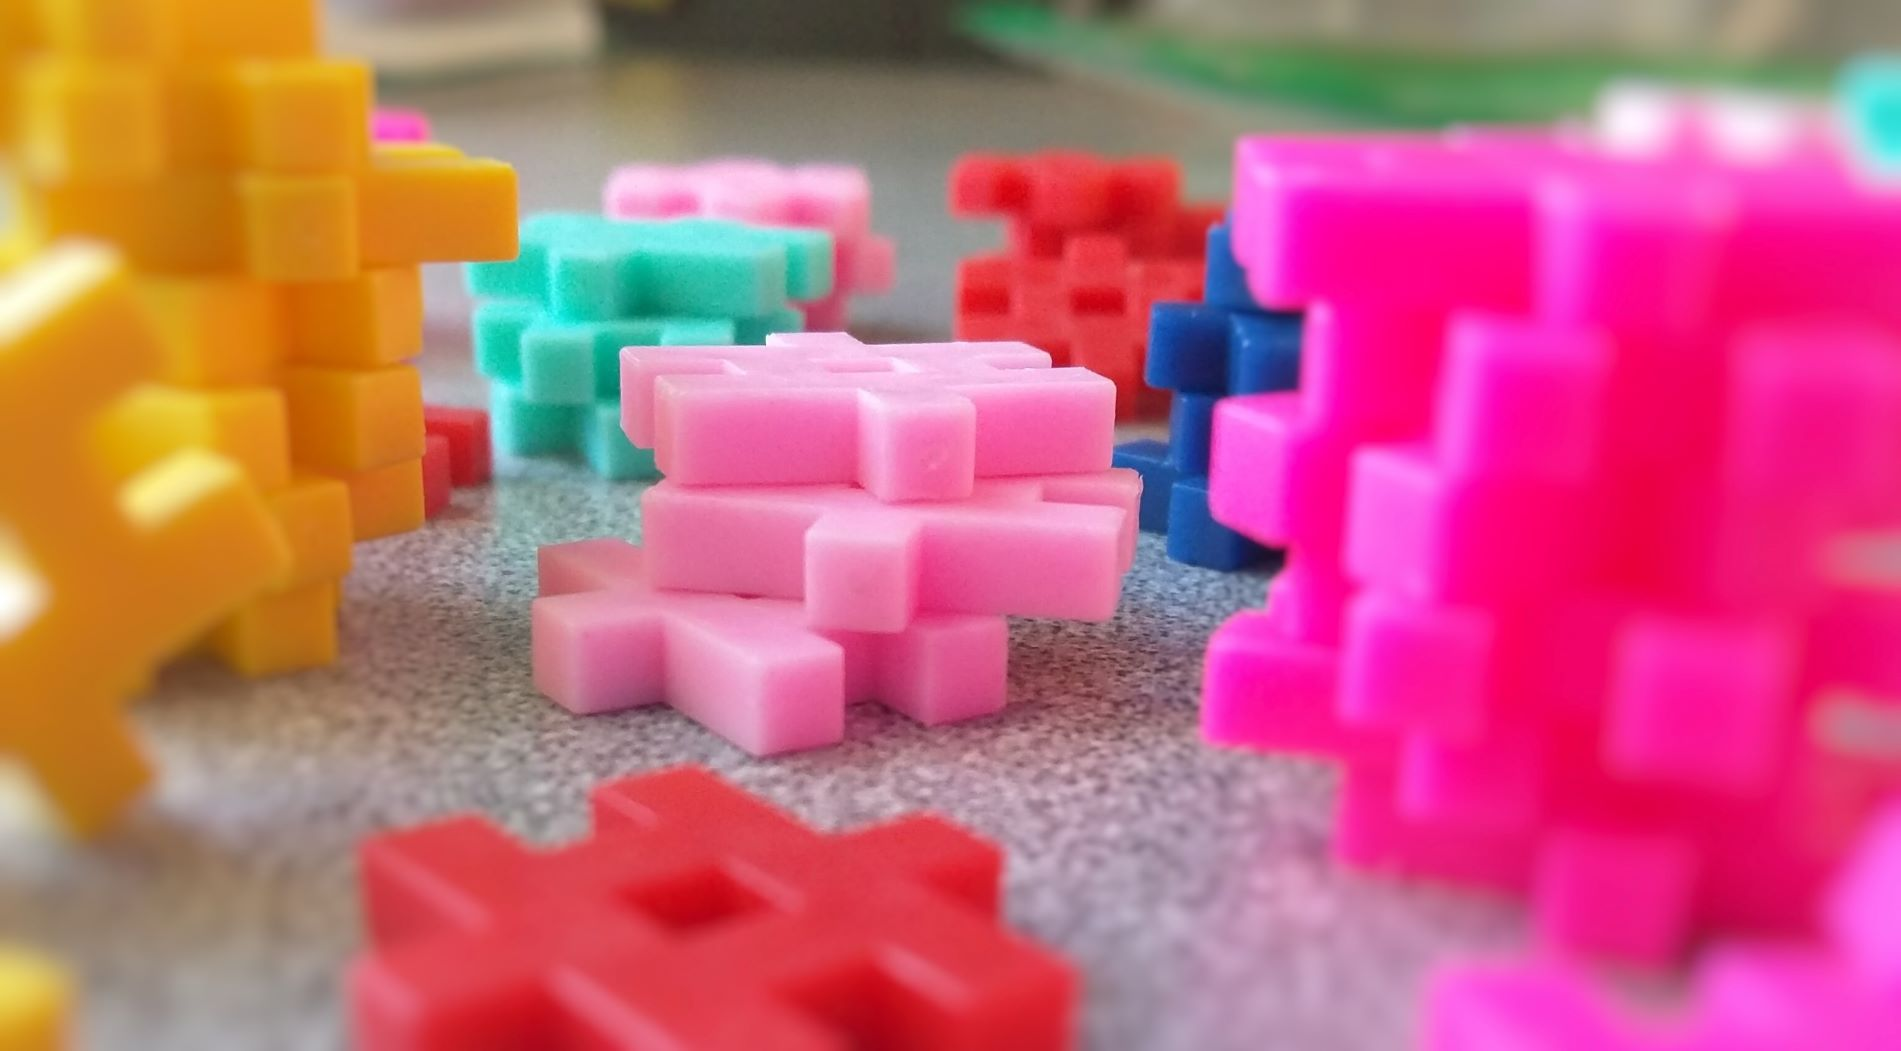 Photo of interlocking plastic toys